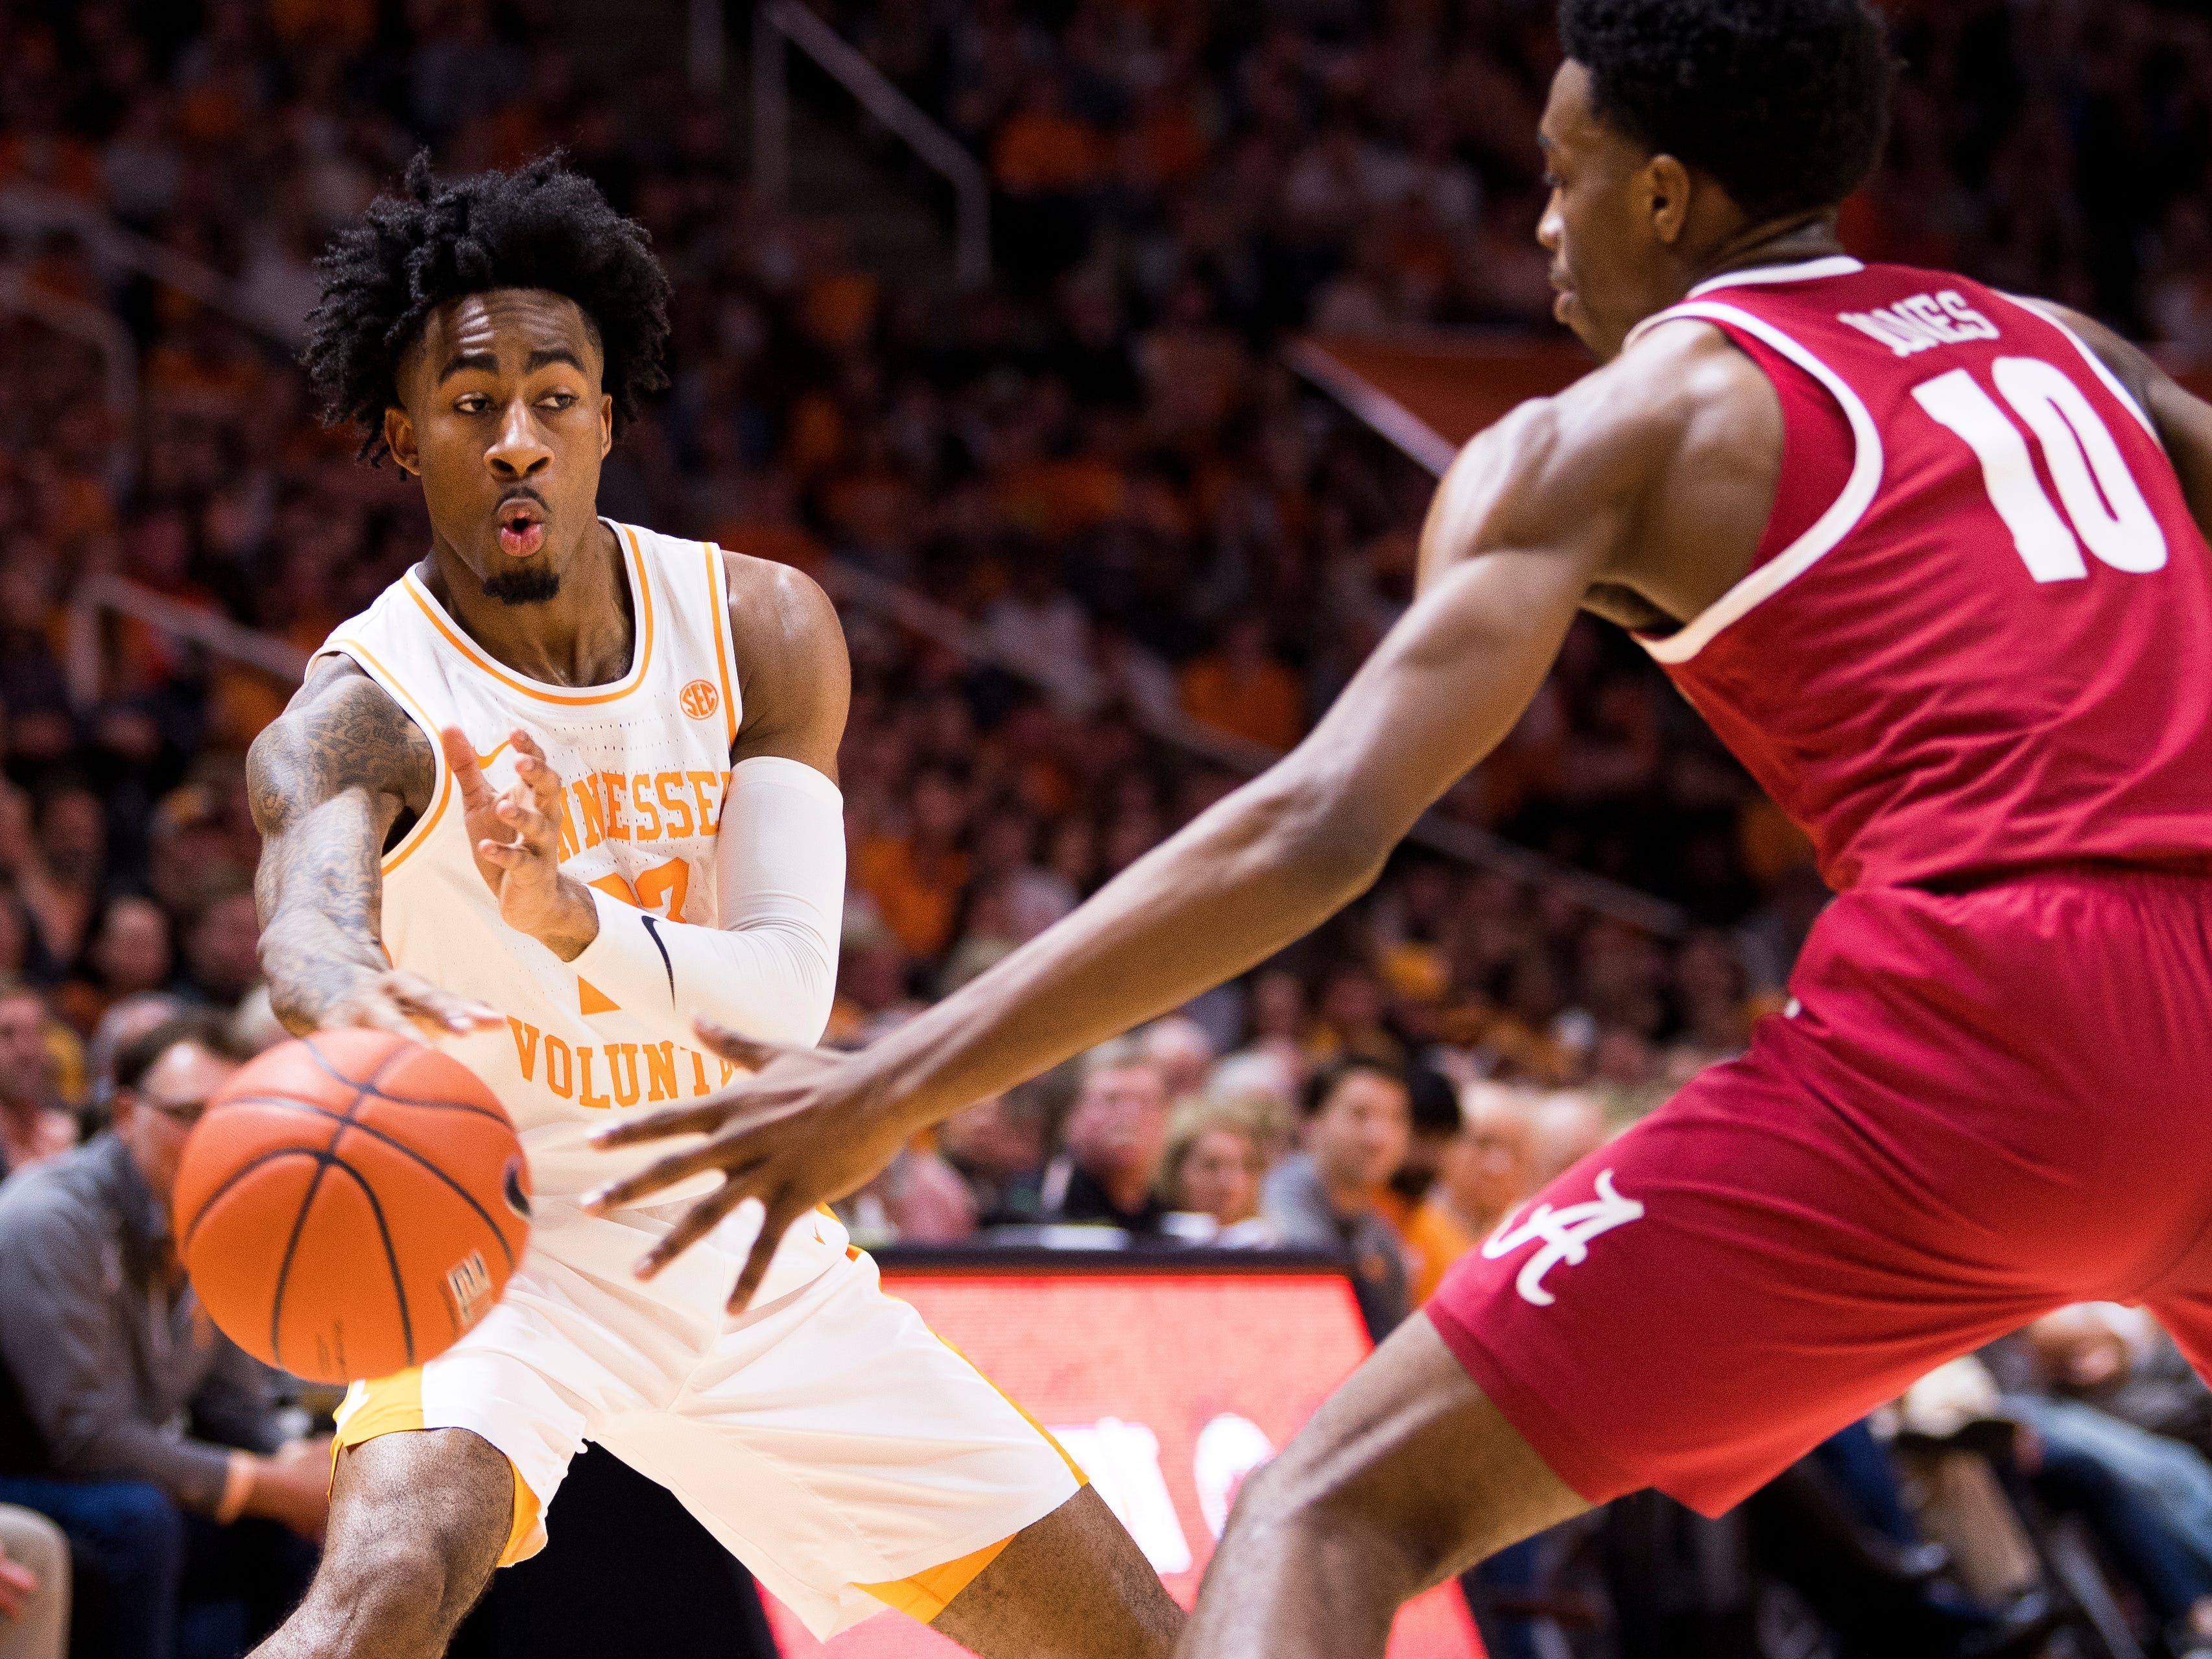 Tennessee guard Jordan Bowden (23) passes the ball off to a teammate during the first half of Tennessee's home SEC conference game against Alabama at Thompson-Boling Arena in Knoxville on Saturday, January 19, 2019.